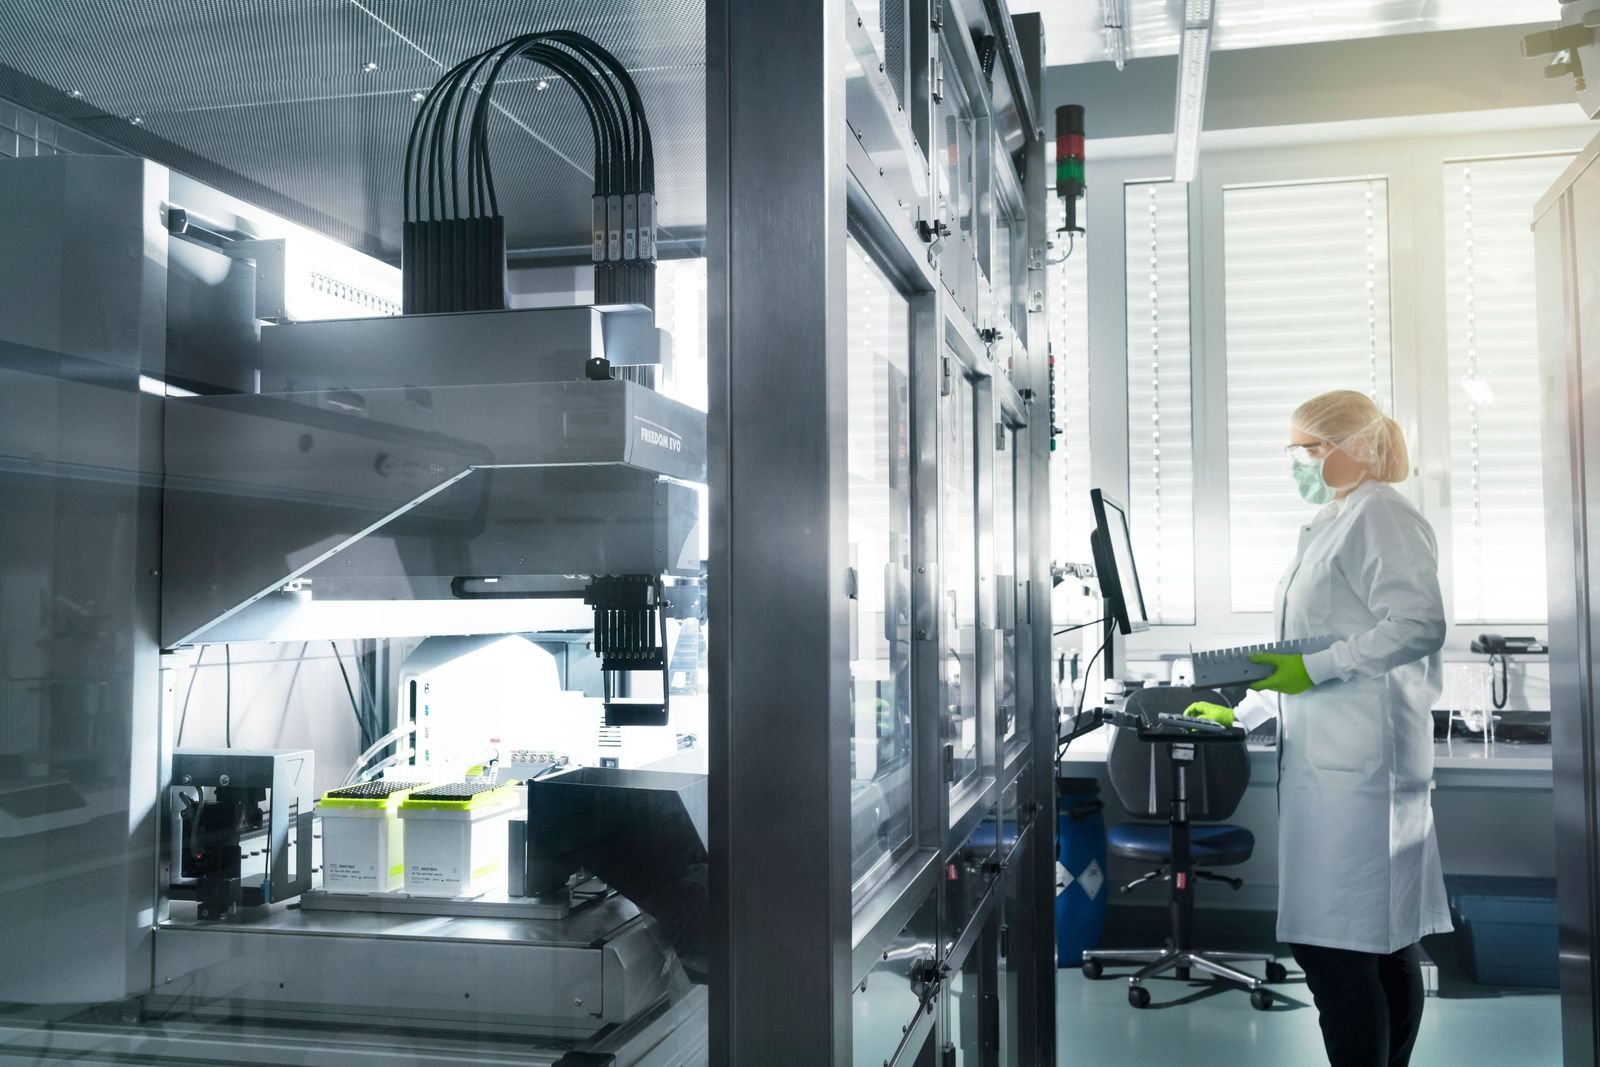 Biontech and Pfizer will supply 200 million doses of vaccine against COVID-19 EU, Mainz, Germany - 11 Nov 2020